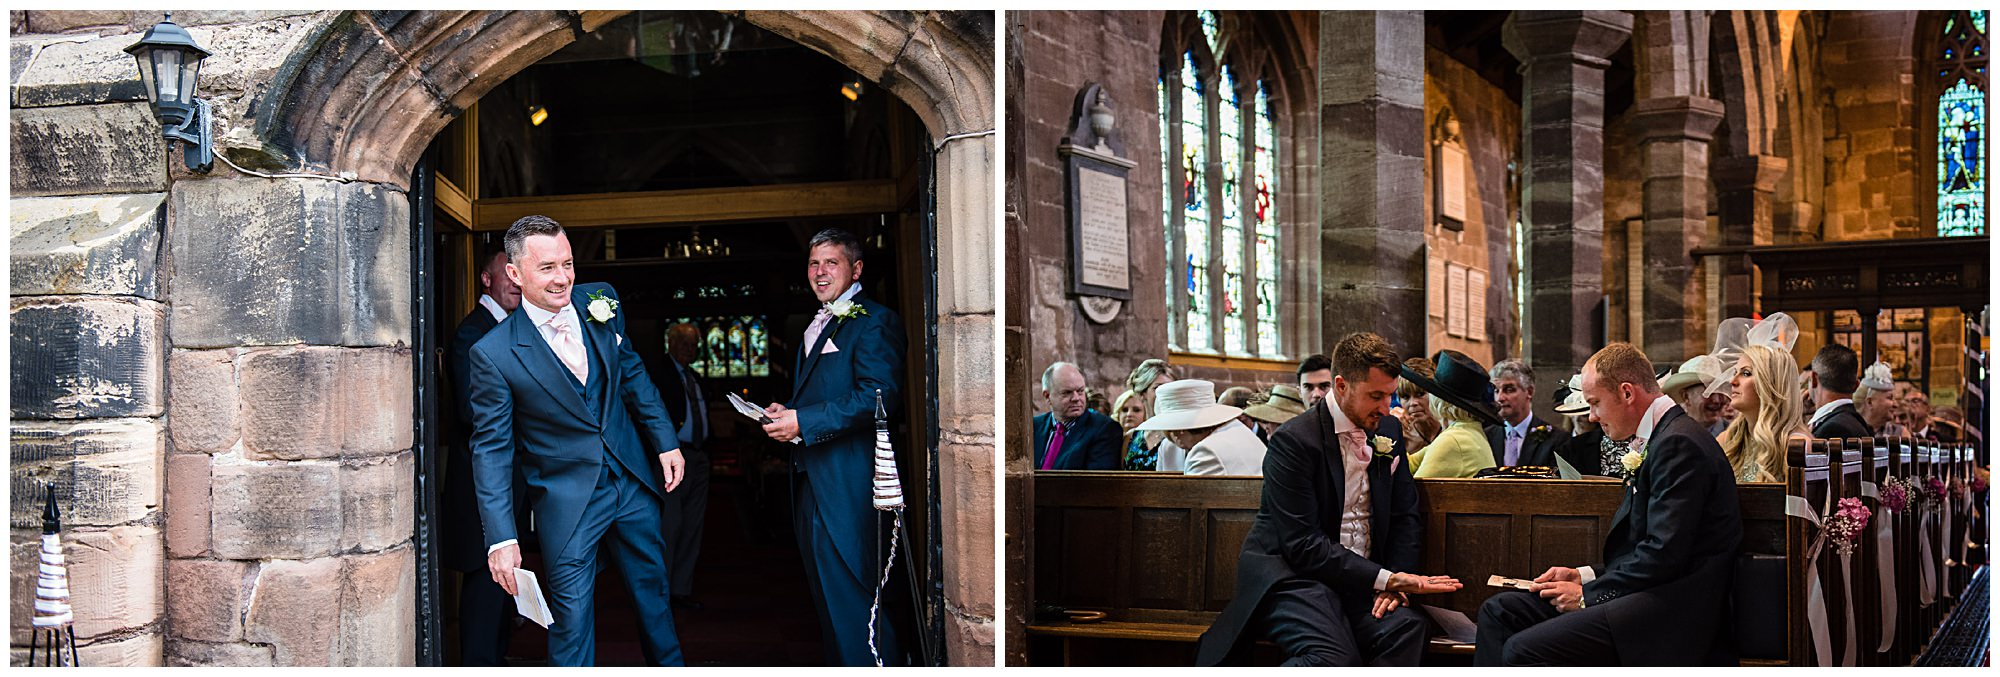 grooms men getting ready for wedding ceremony - shropshire wedding photographer